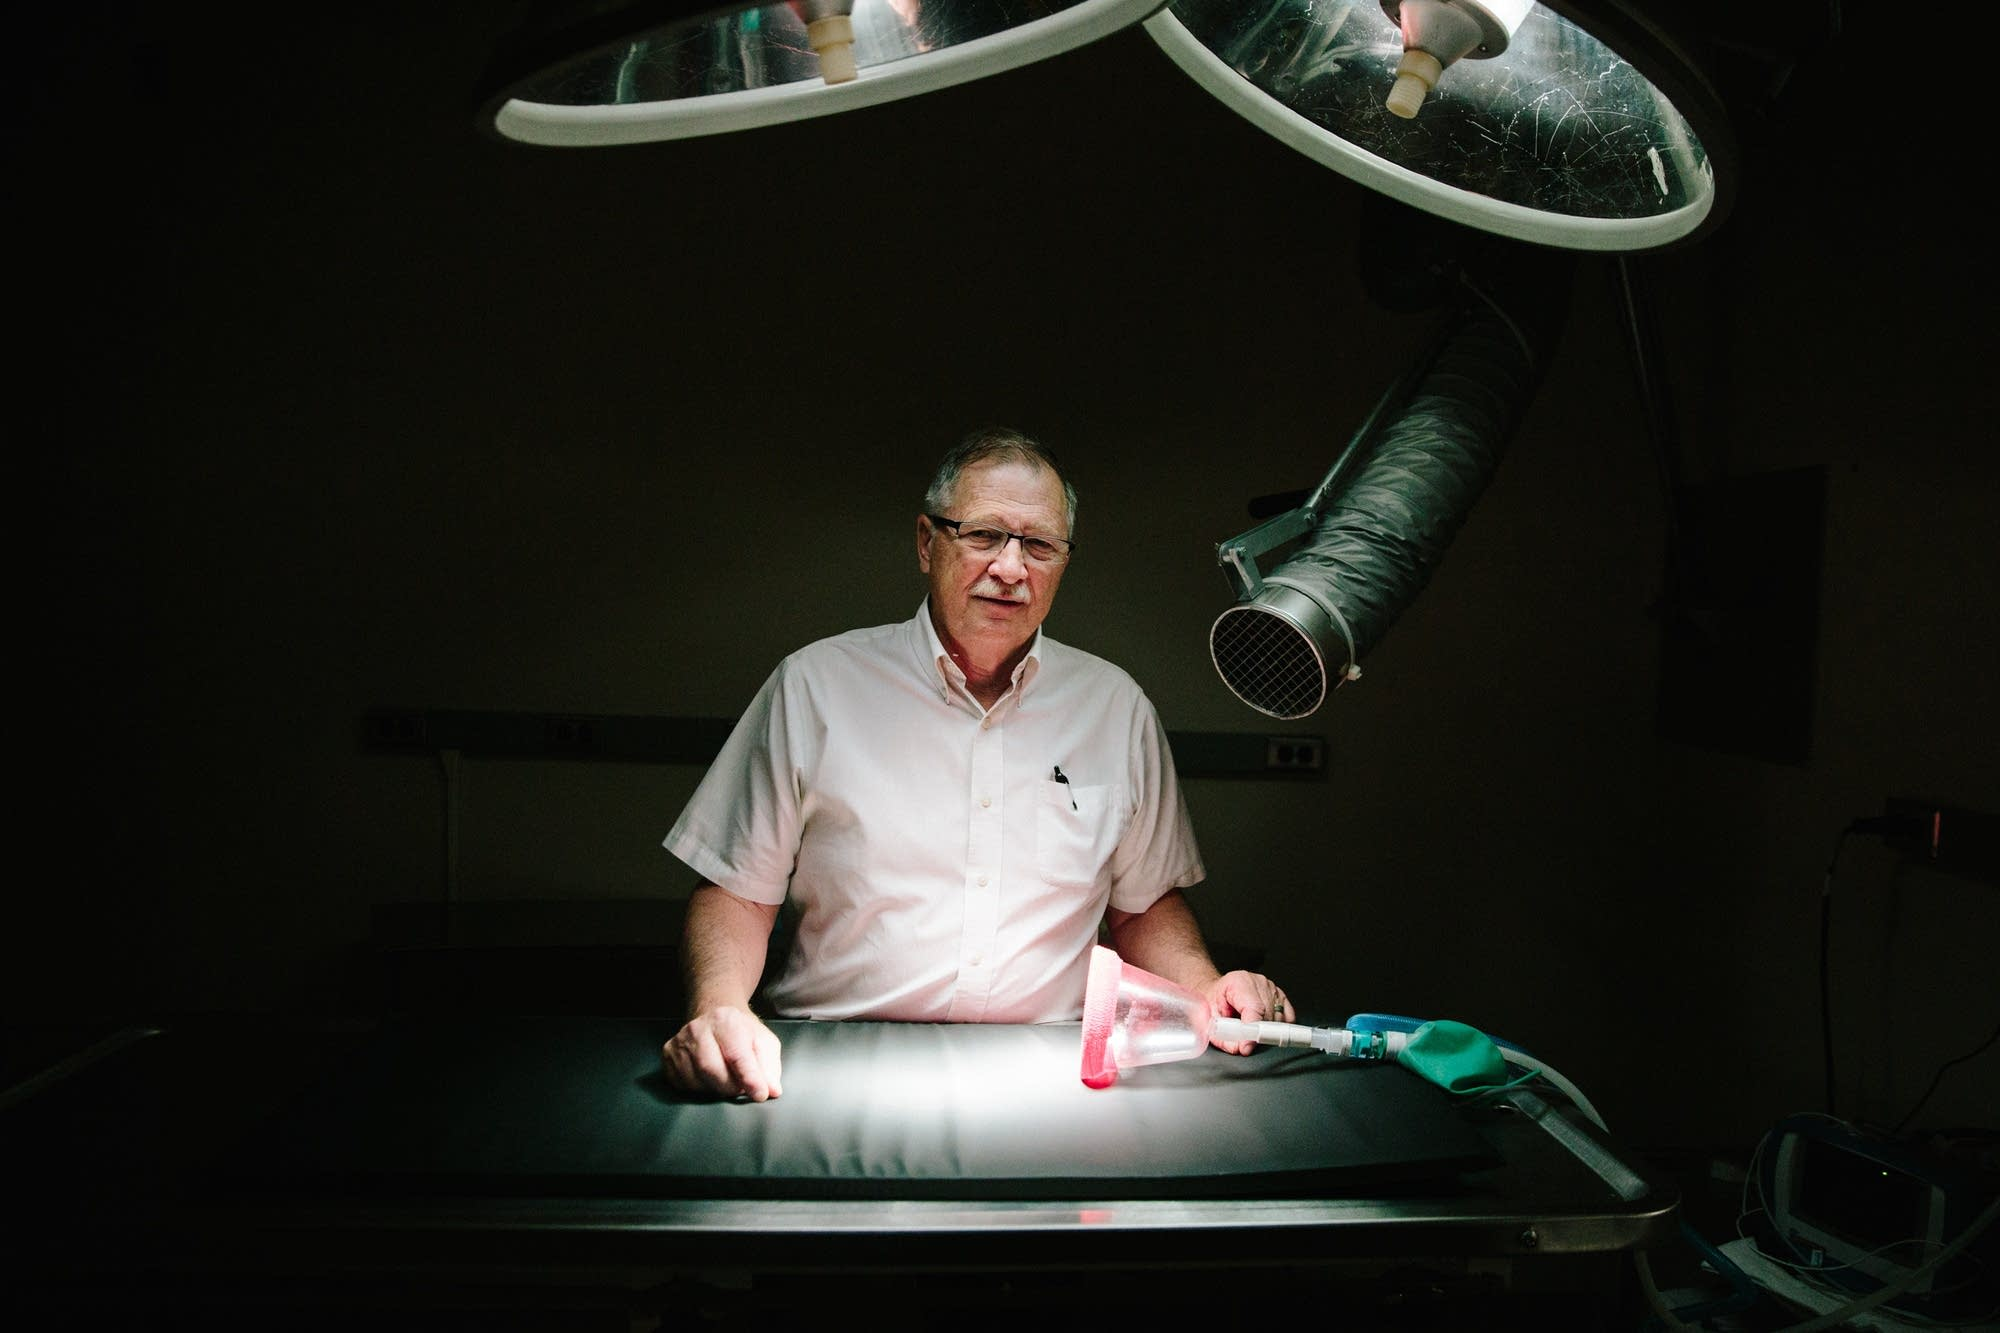 Dr. Patrick Redig stands for a portrait next to an operating table.